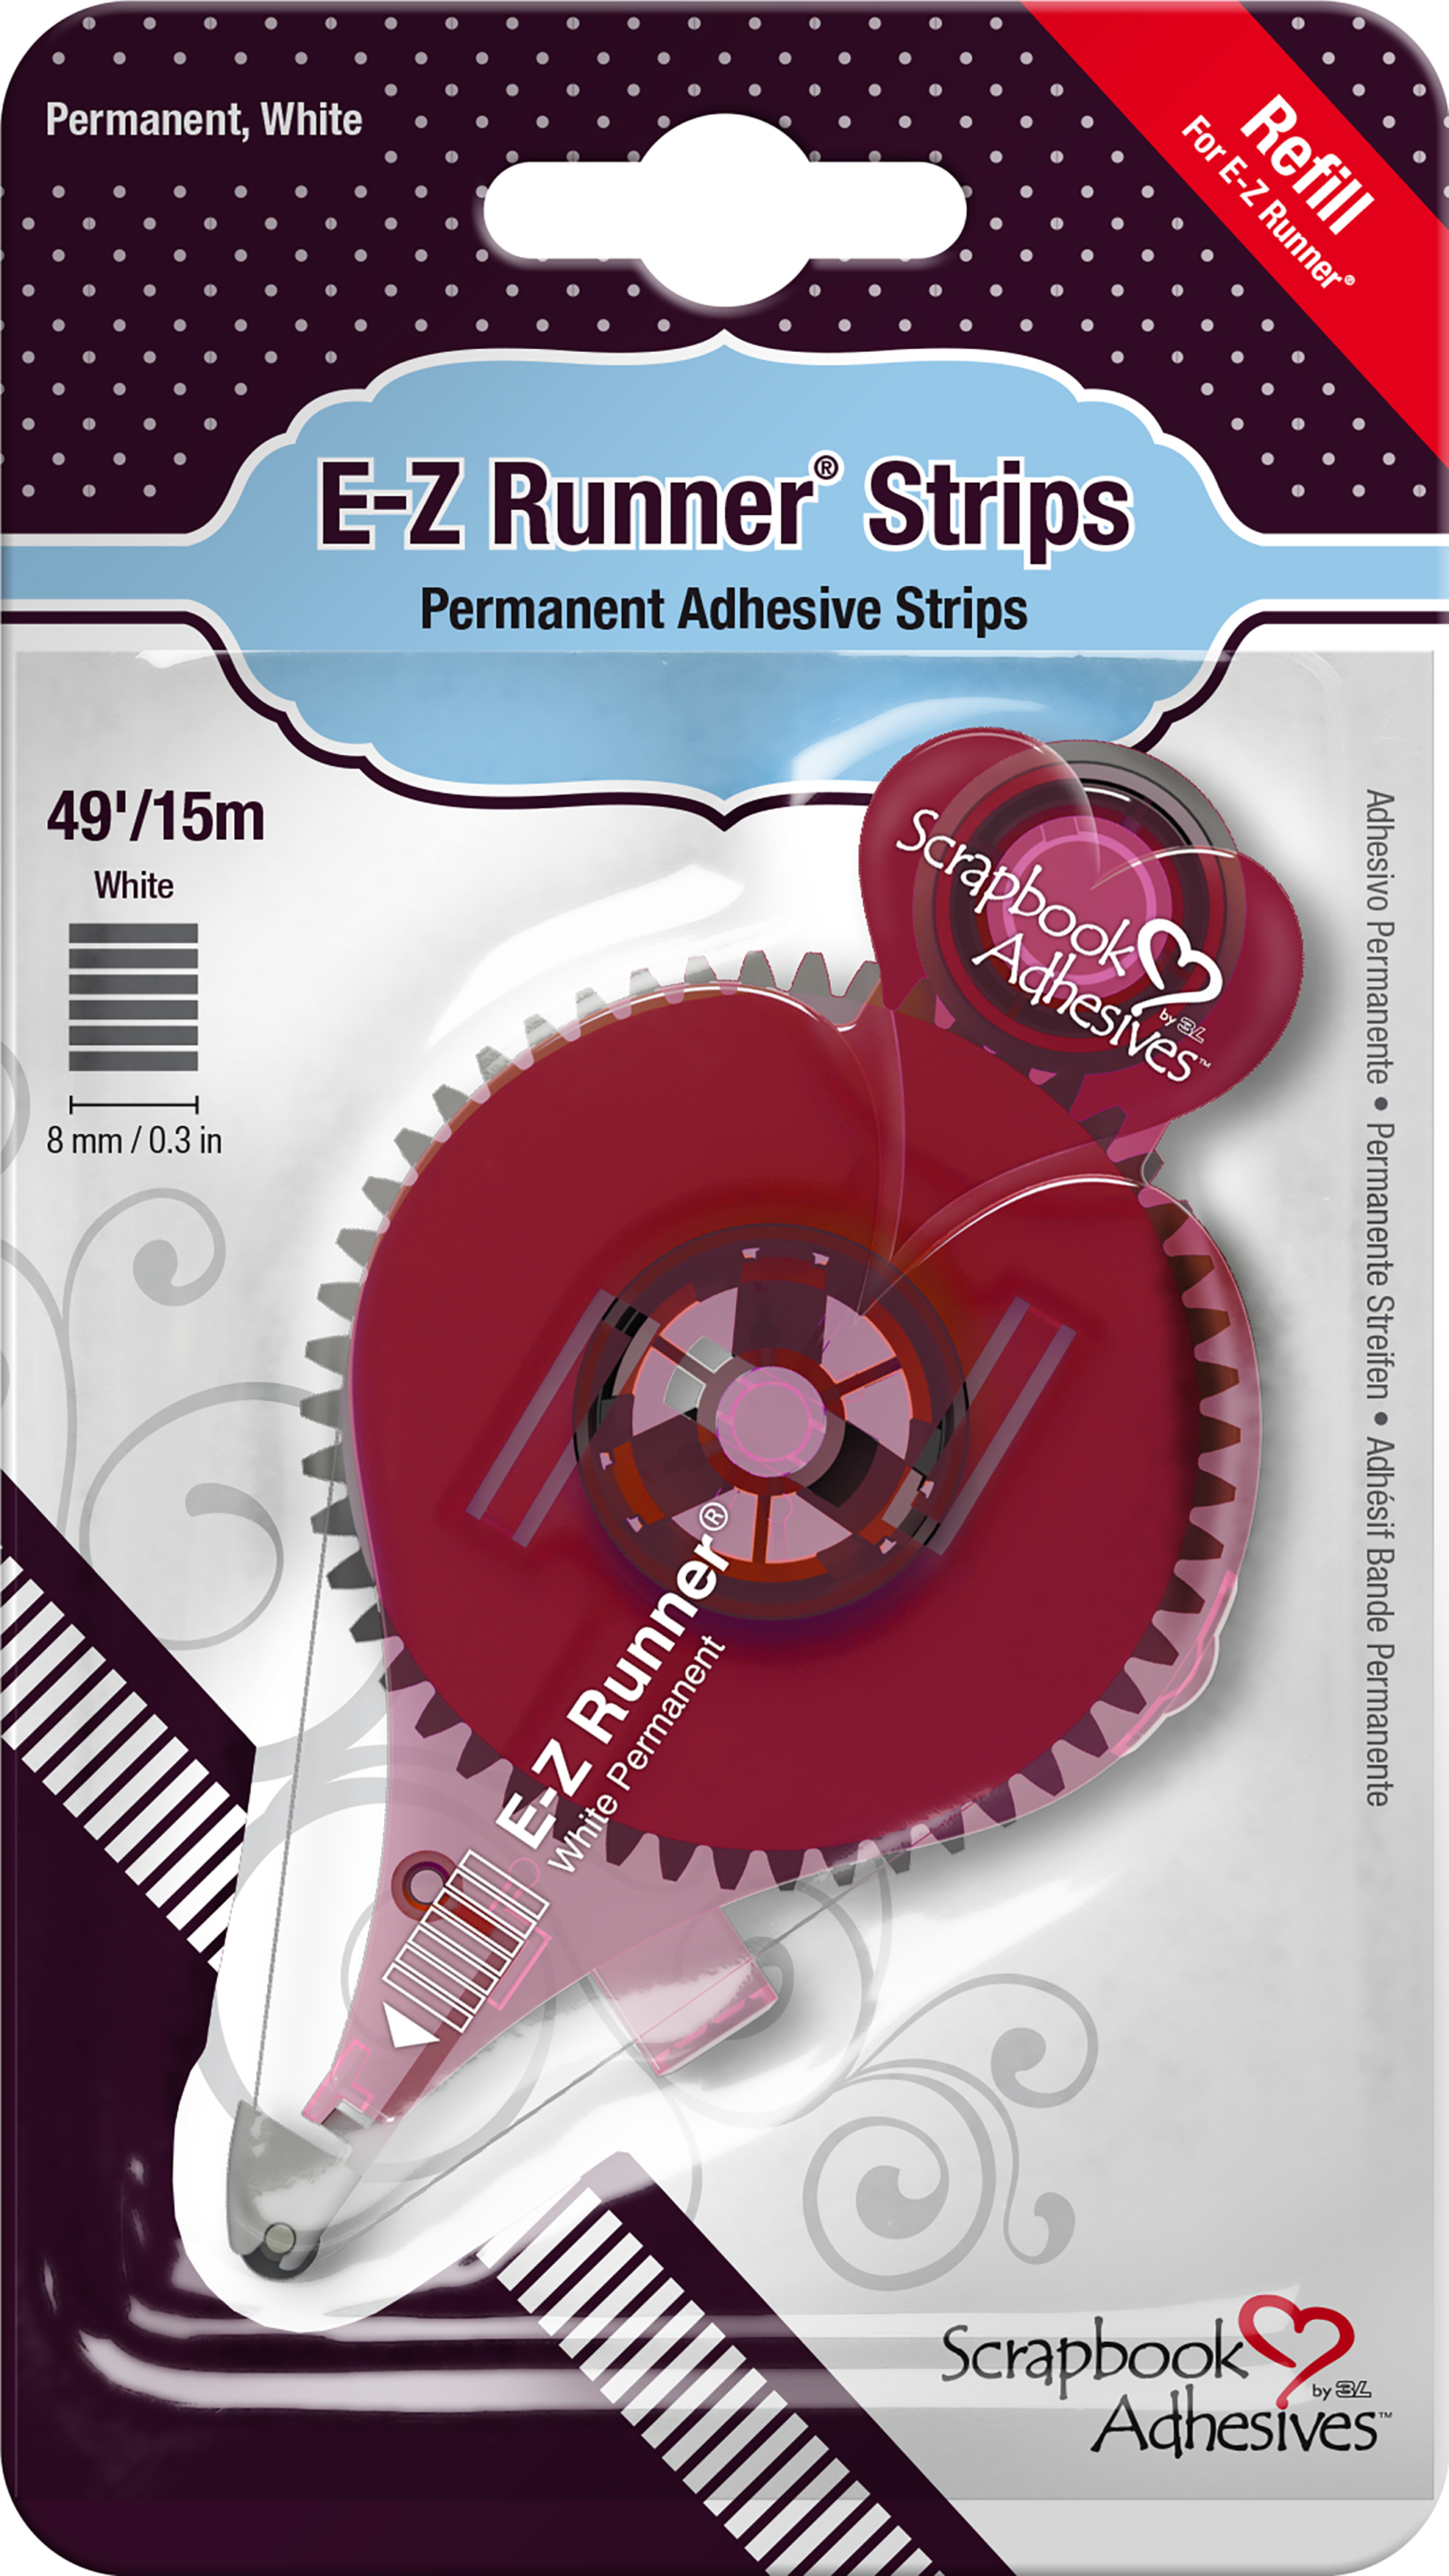 Scrapbook Adhesives E-Z Runner Refill-Permanent, 49', Use For 12006